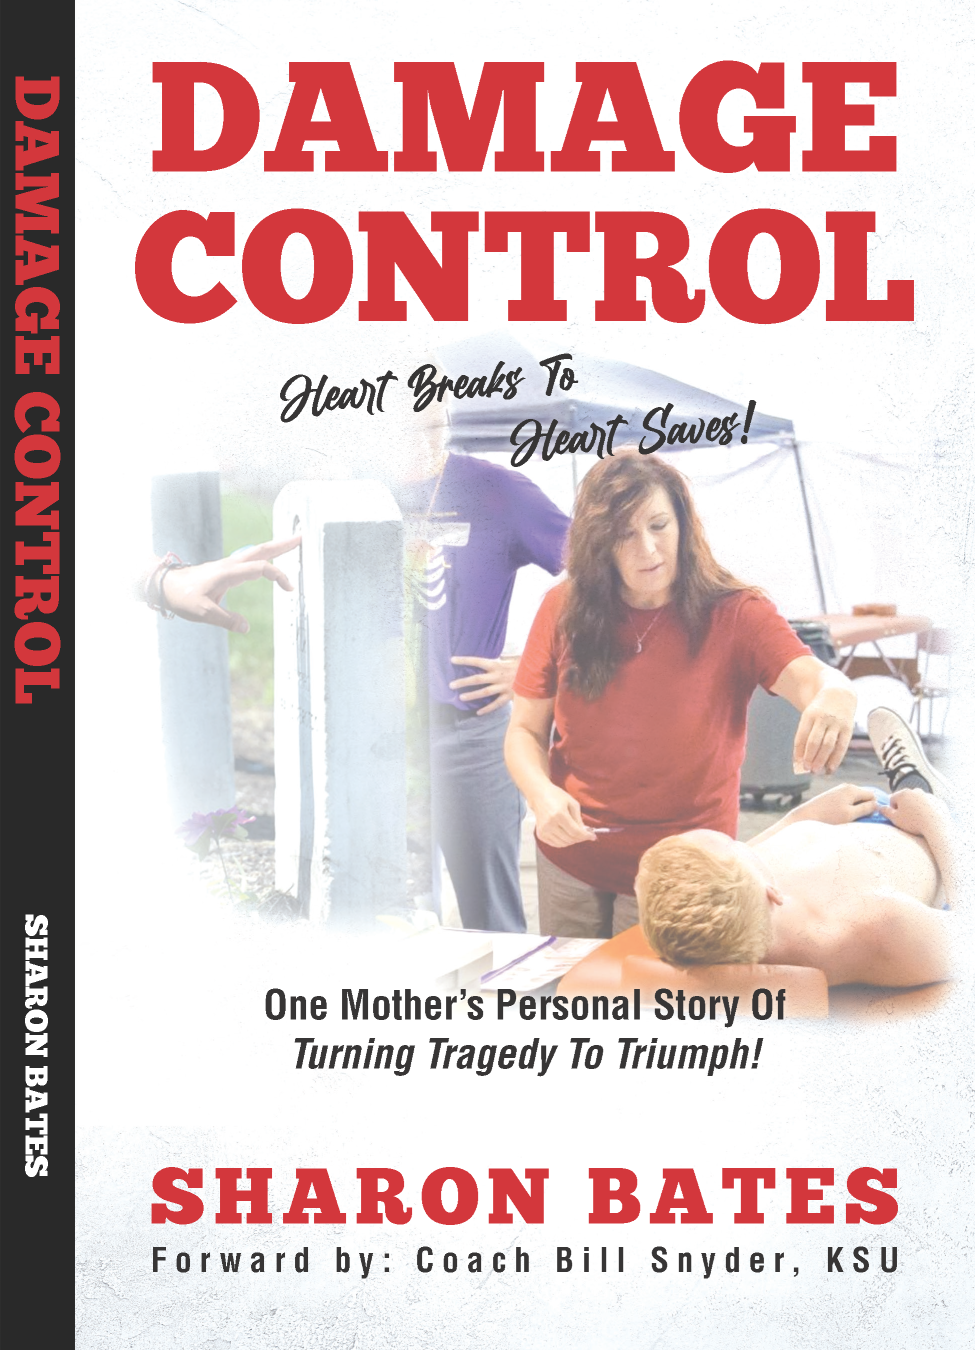 Damage control cover 1 resized